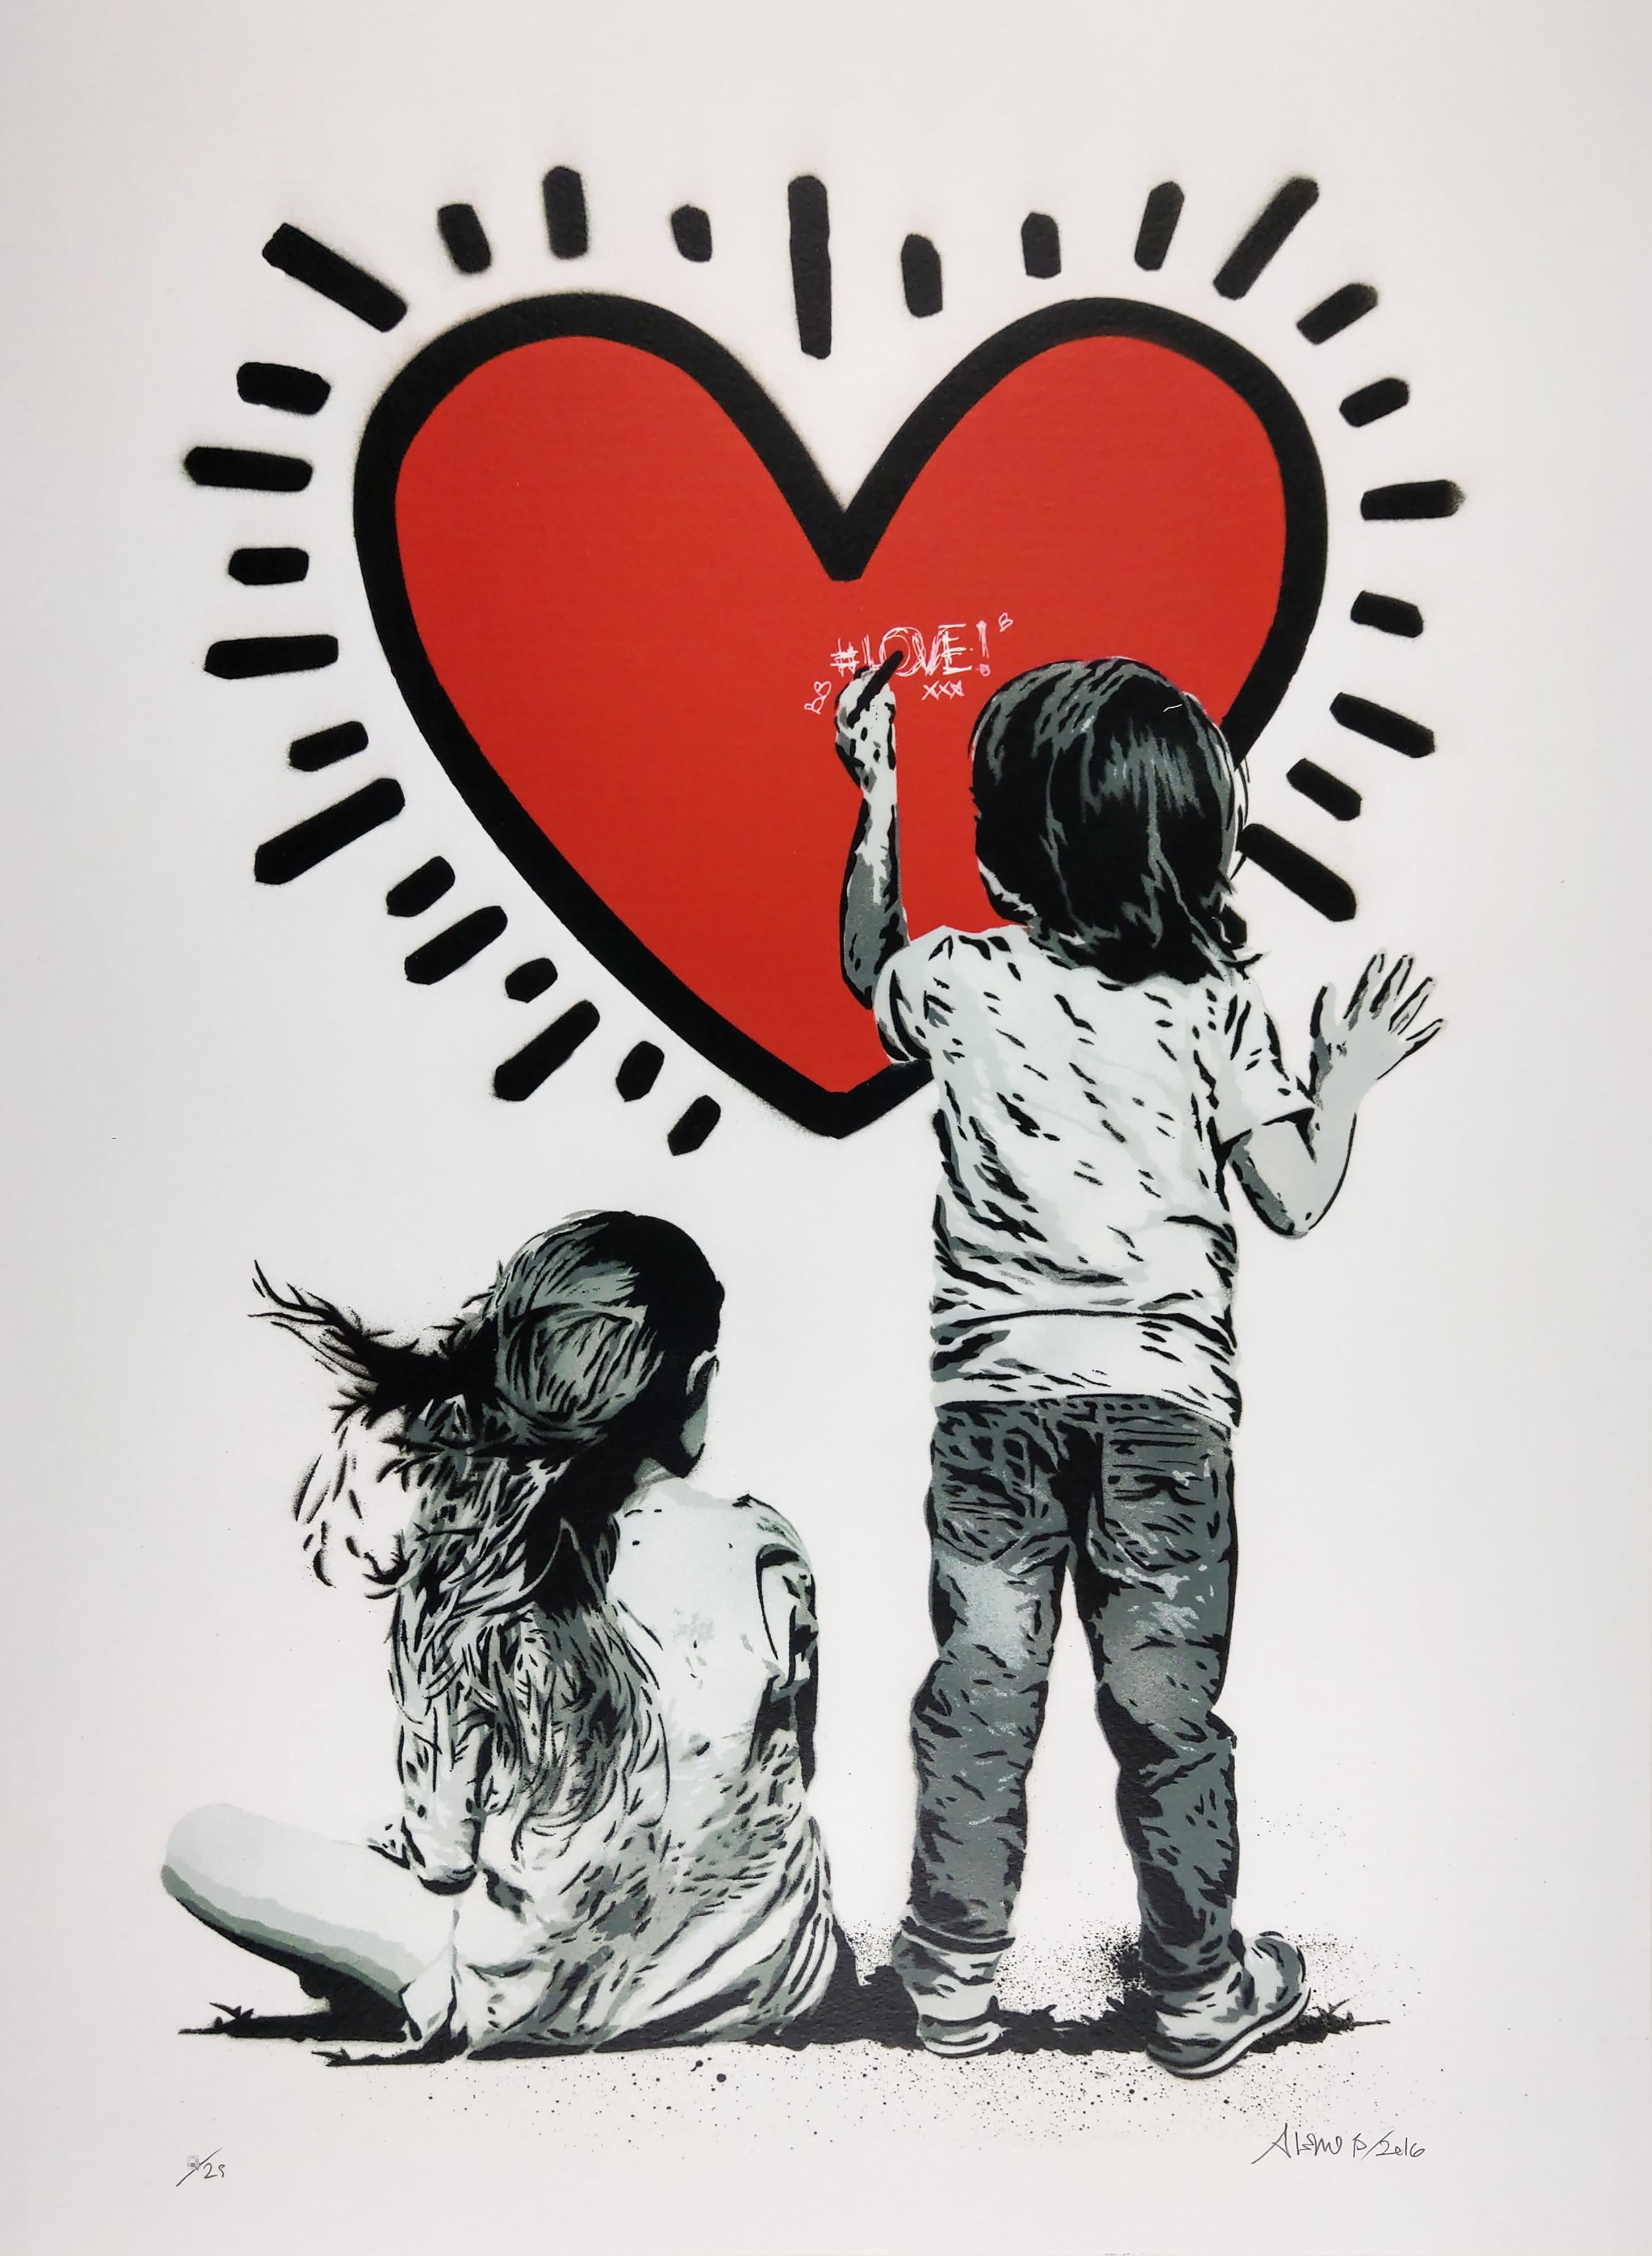 Heart, by Alessio-B, Contemporary Street Art Print